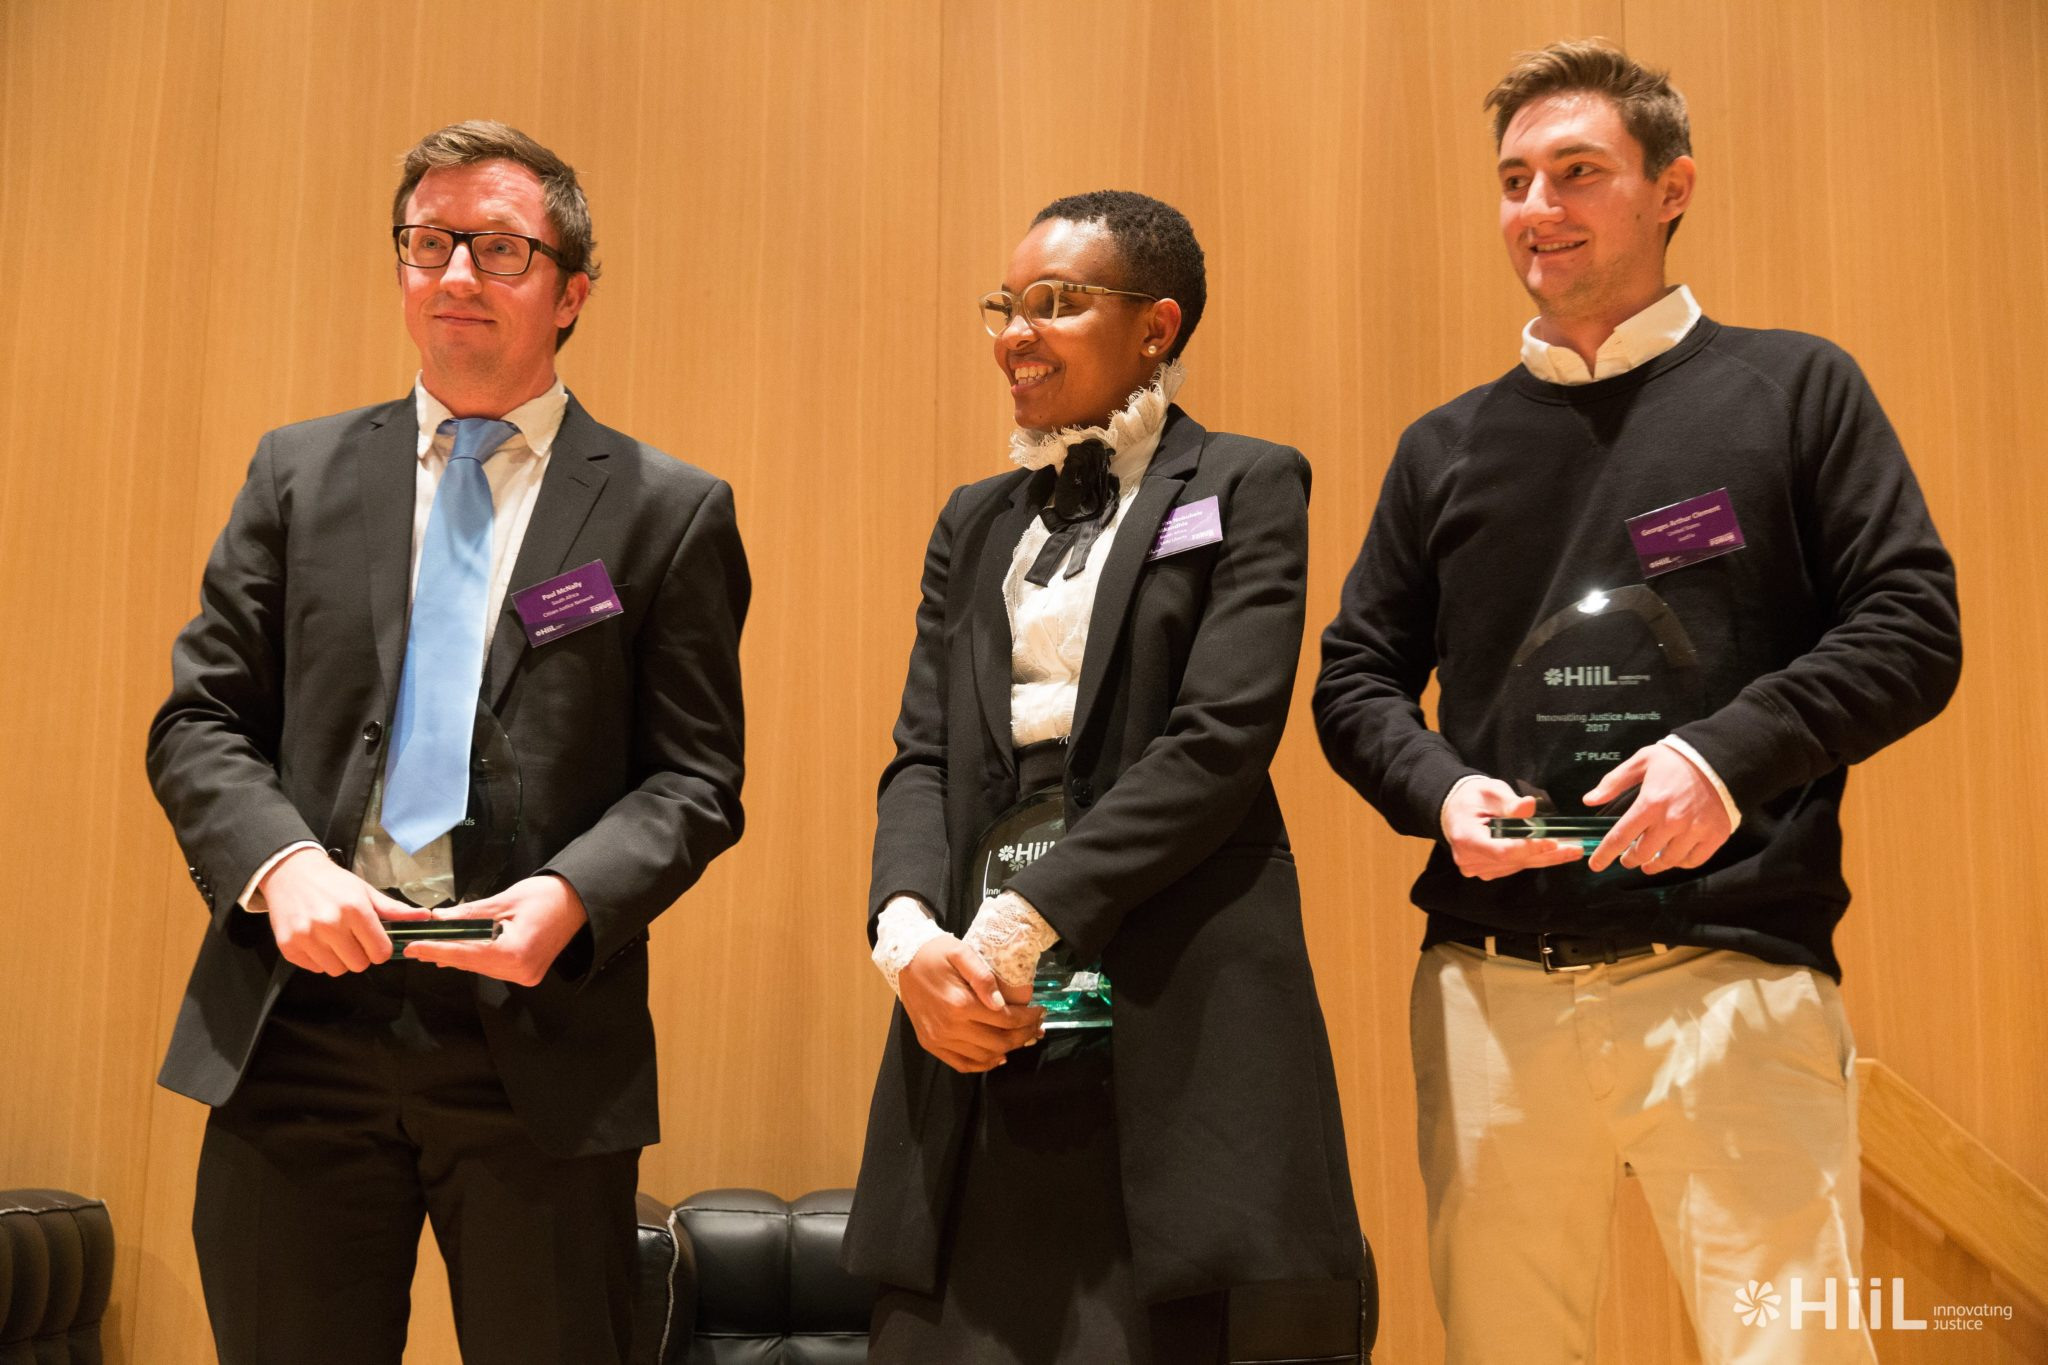 Southern Africa startups win at Innovating Justice Forum in The Hague